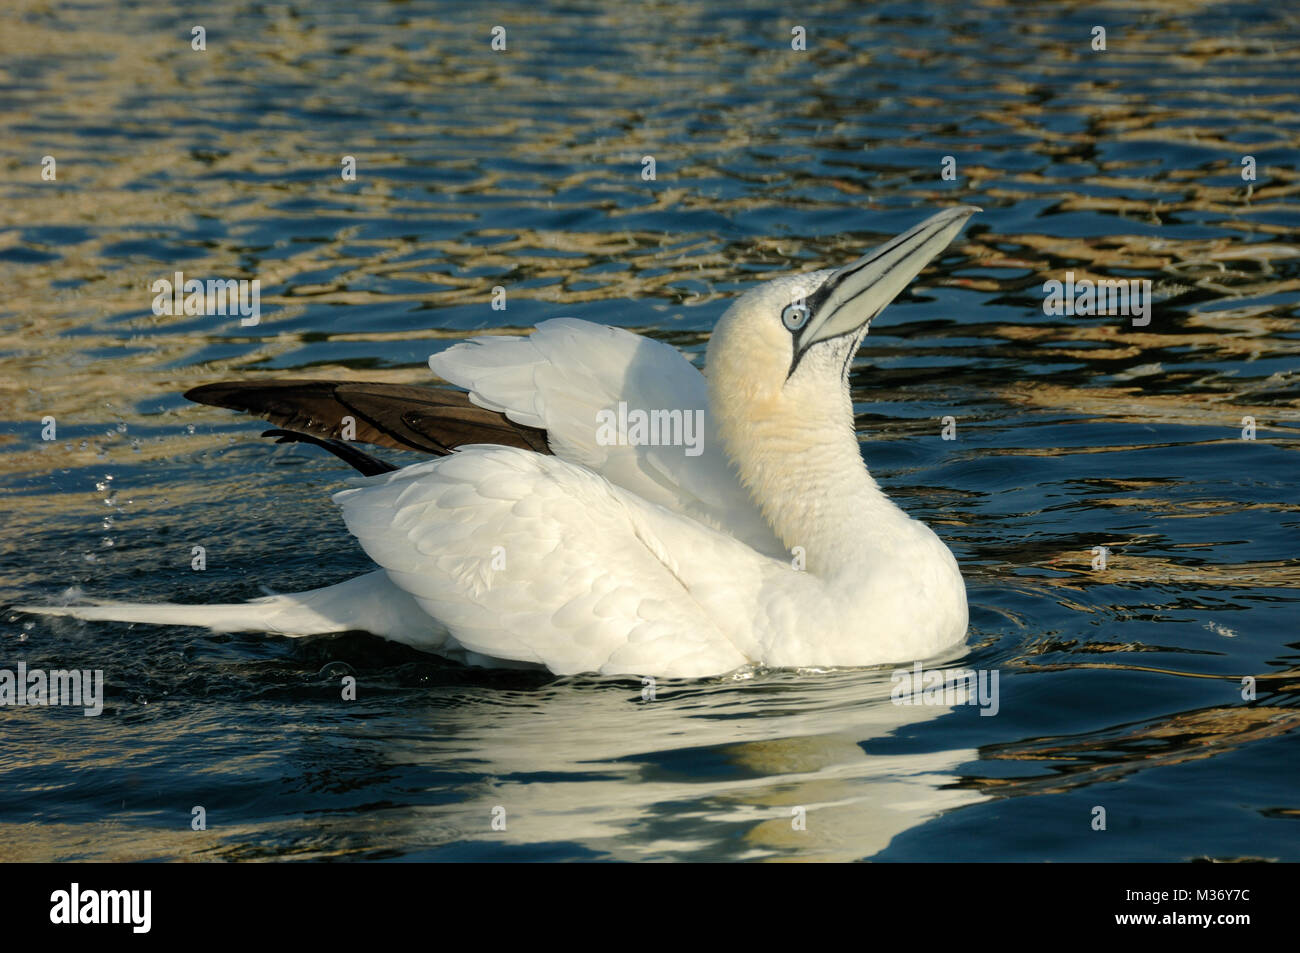 Northern Gannet, Morus bassanus, Swimming in the Mediterranean Sea near Carry-le-Rouet Provence france - Stock Image